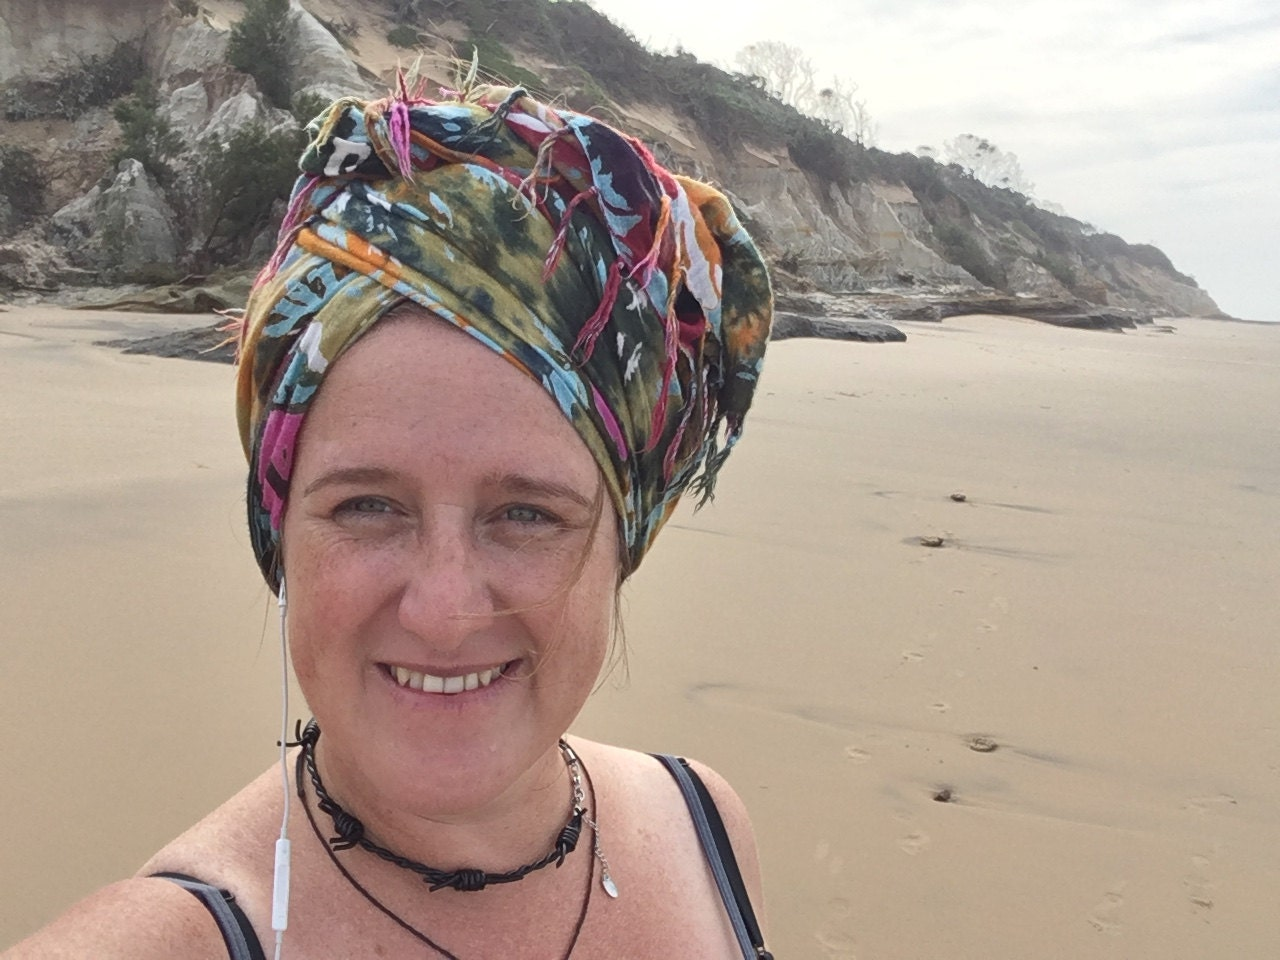 On the beach in Africa - warm Indian Ocean - warm heart!